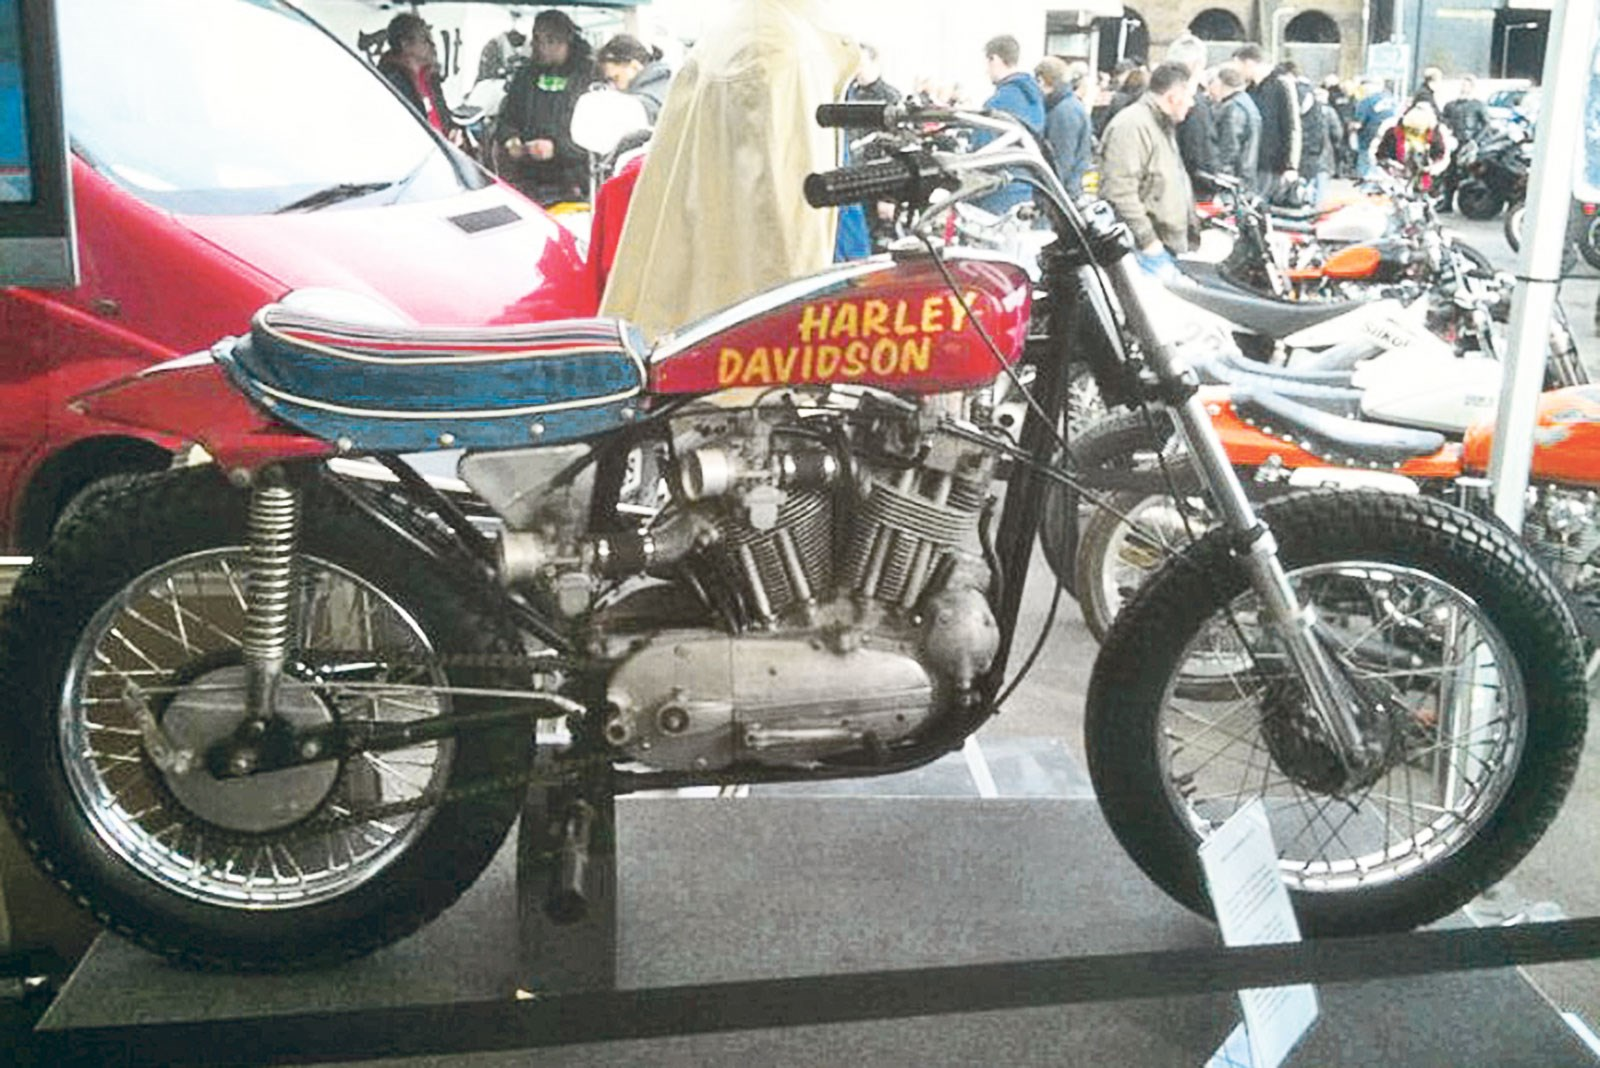 Evel Knievel S 1976 Harley Davidson Xl1000 Is For Sale: Whatever Happened To Evel Knievel's Bikes?